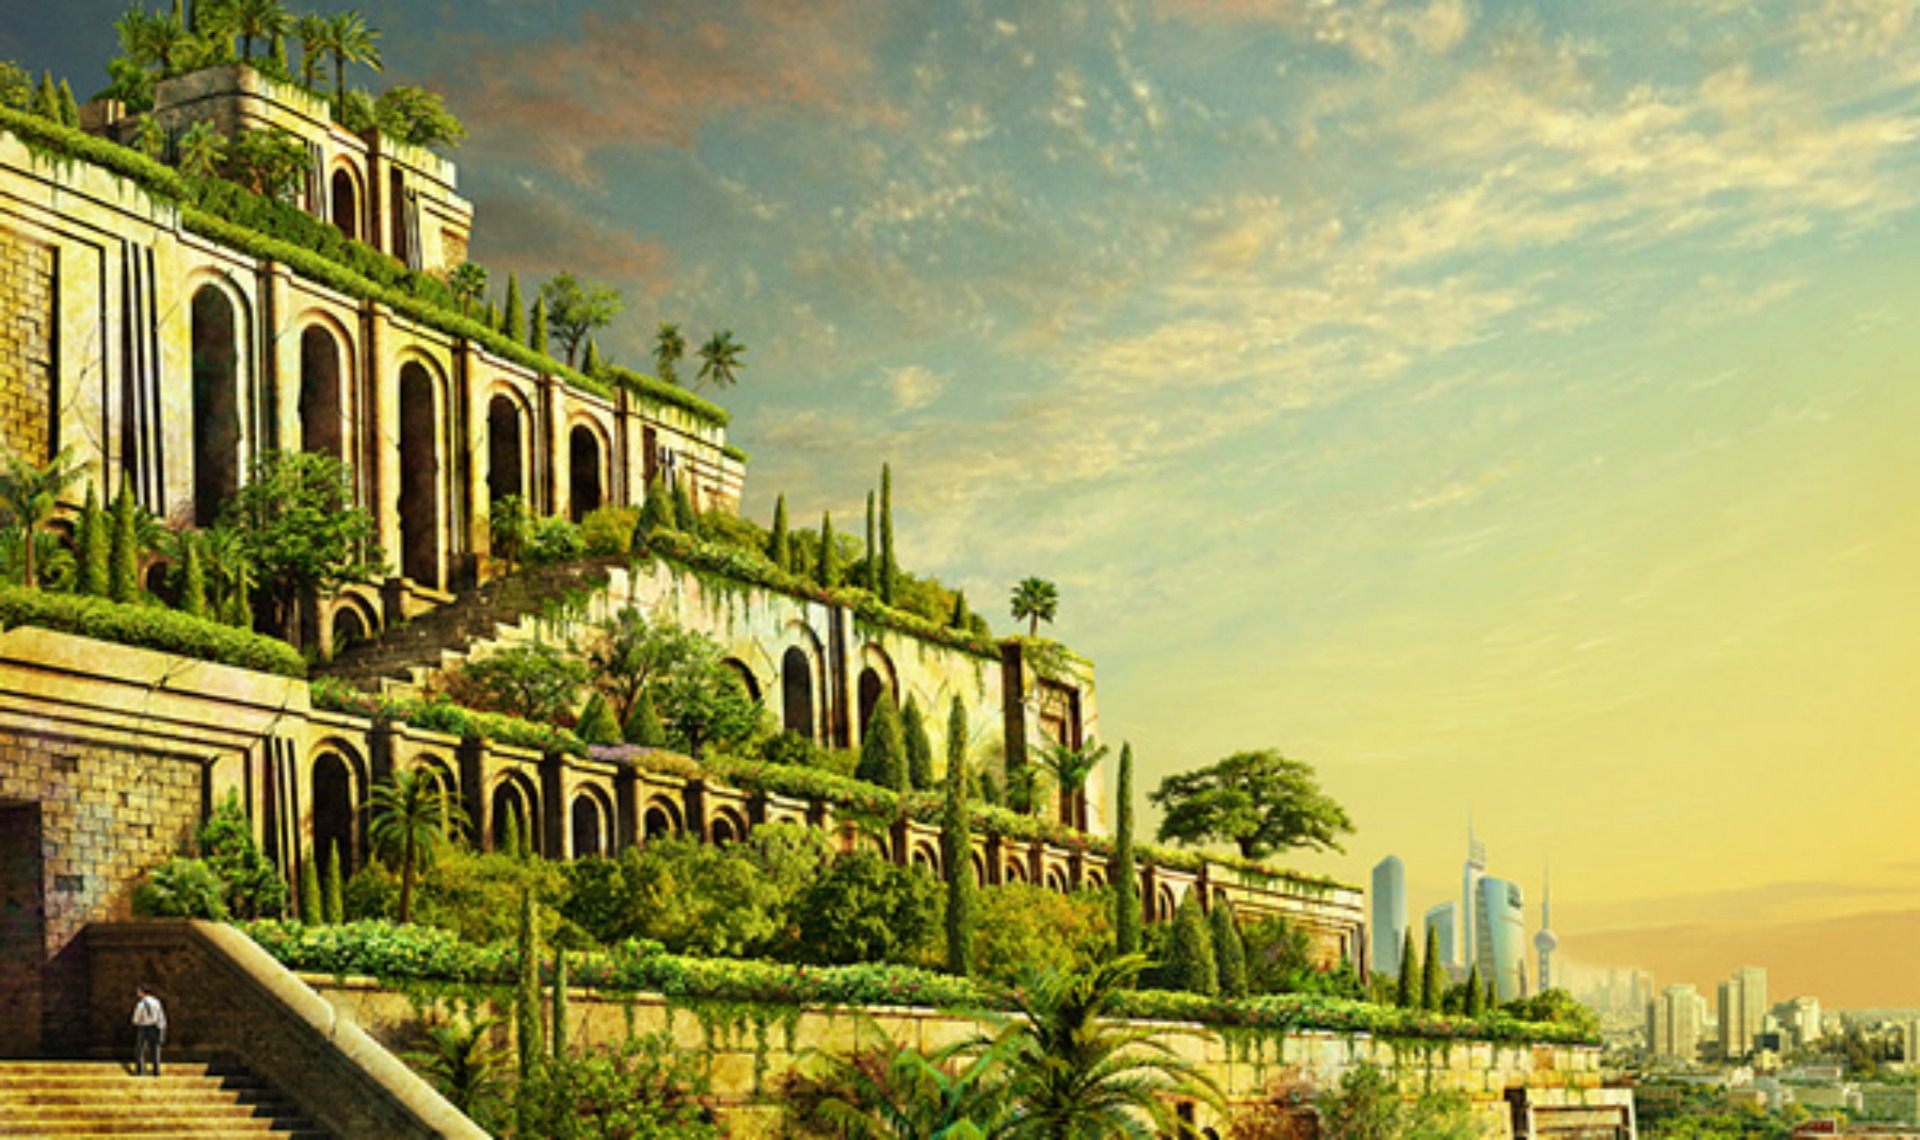 Babylonian hanging garden pictures What History Got Wrong About The Hanging Gardens Of Babylon